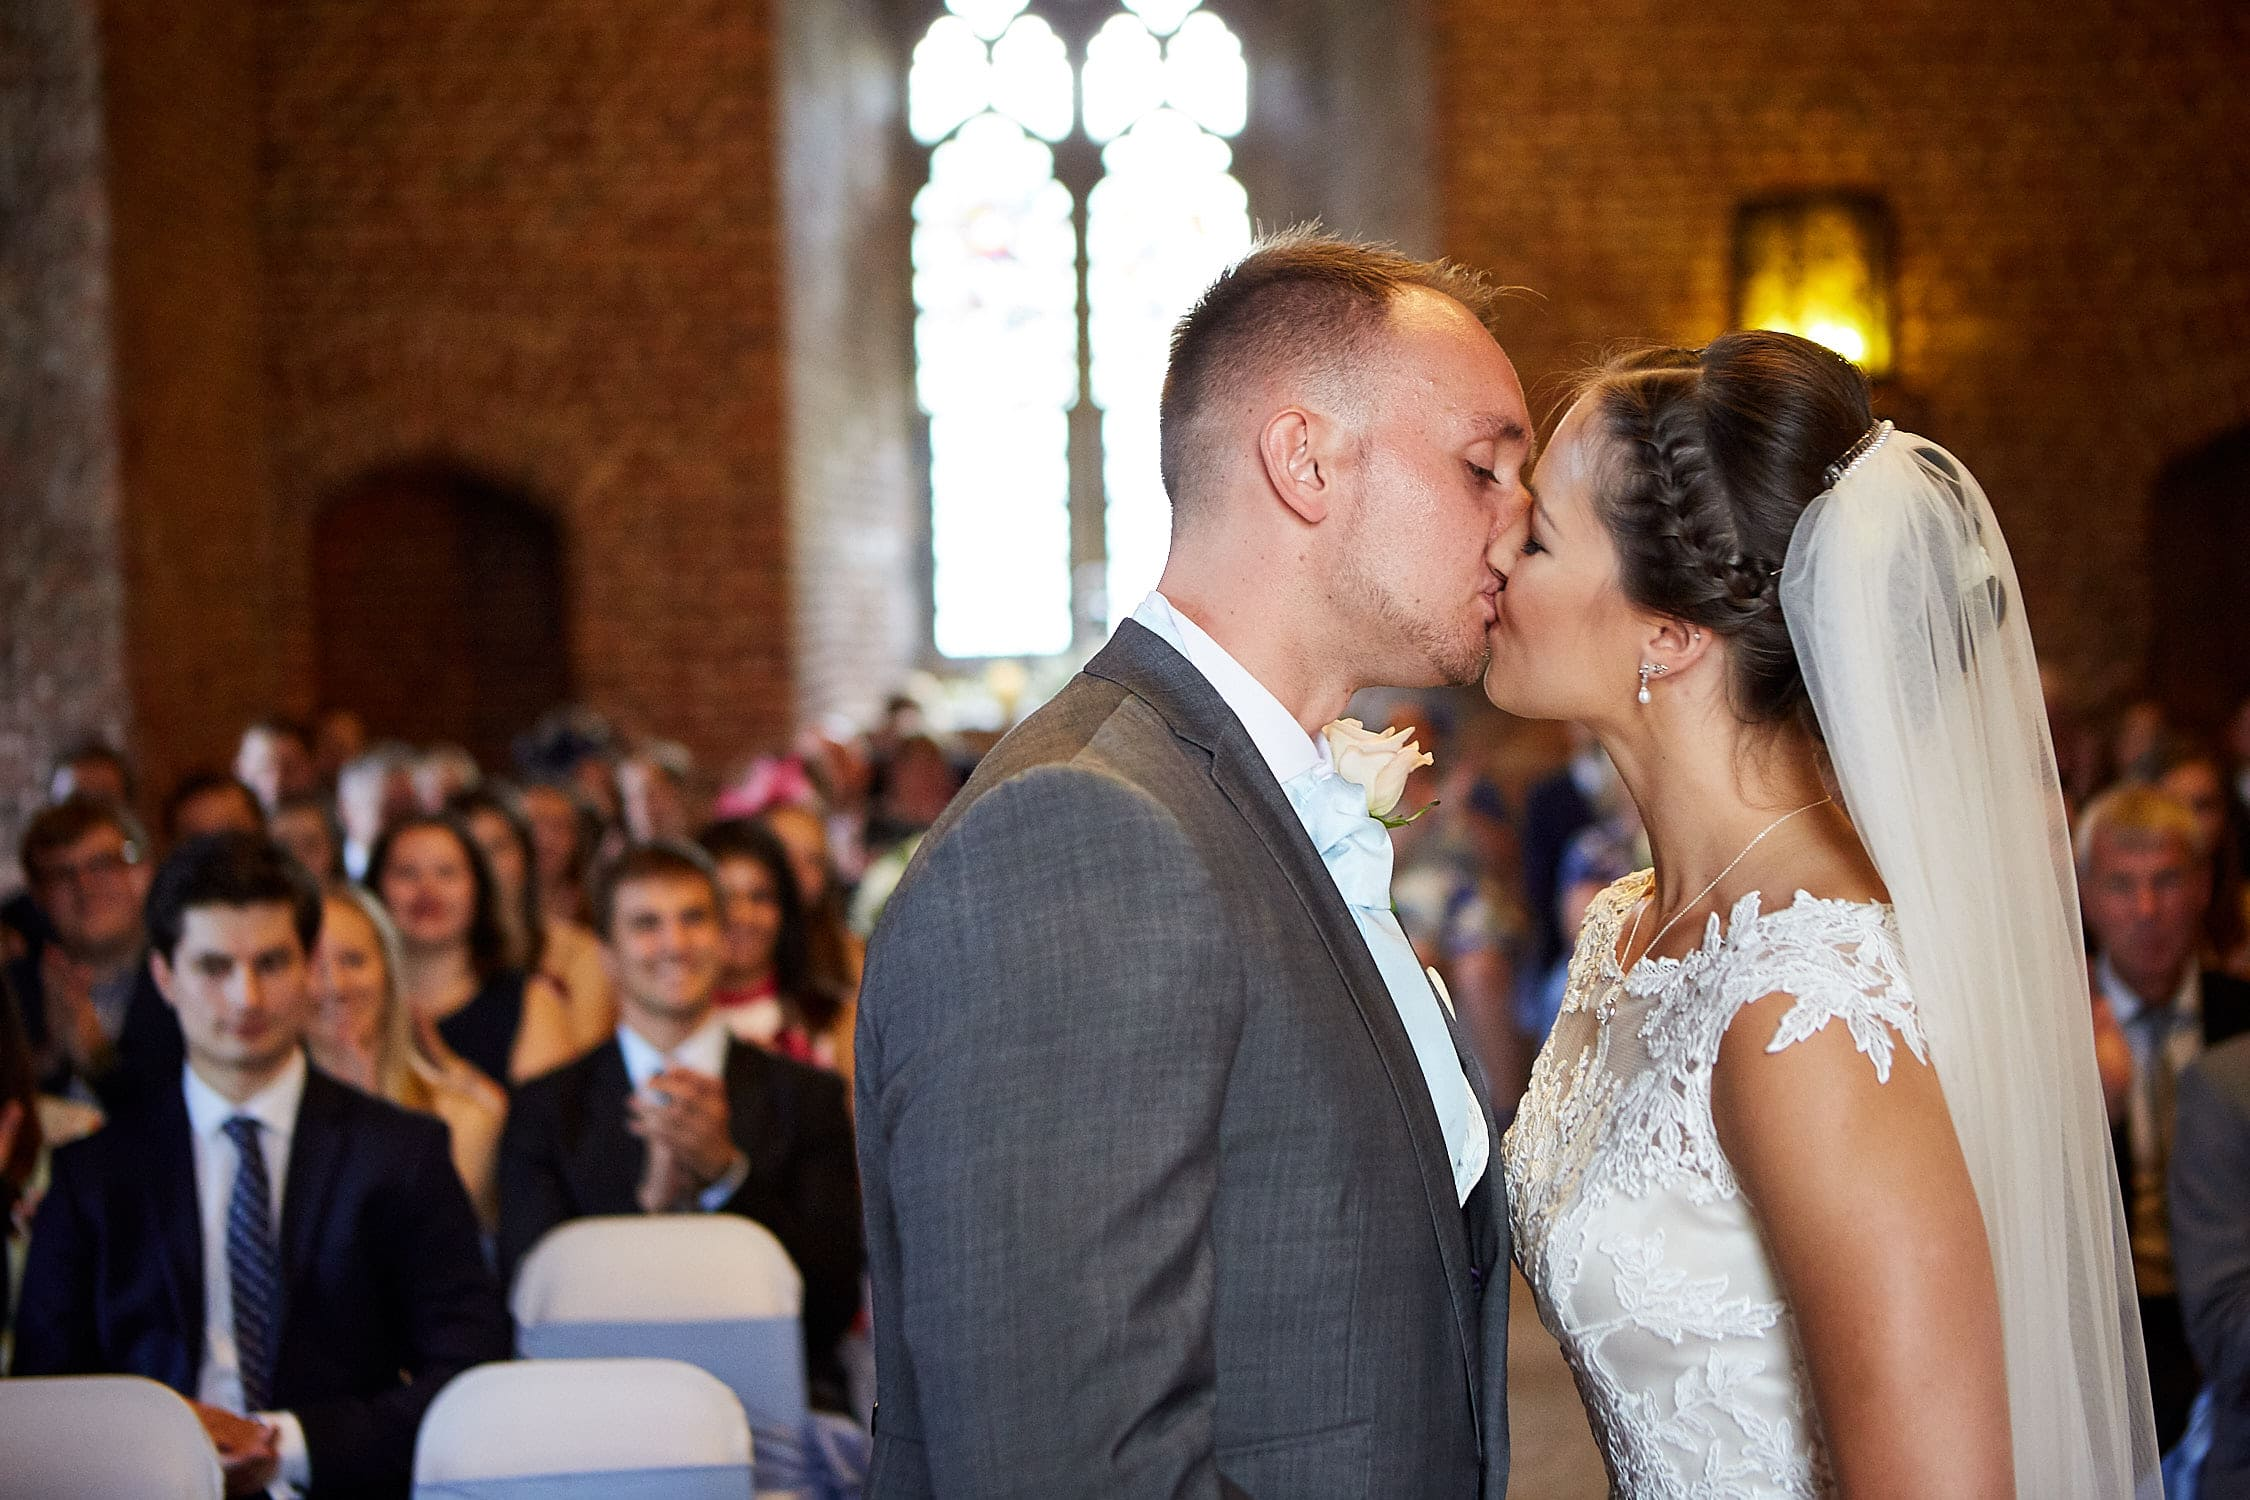 A groom kisses his new wife at the ceremony